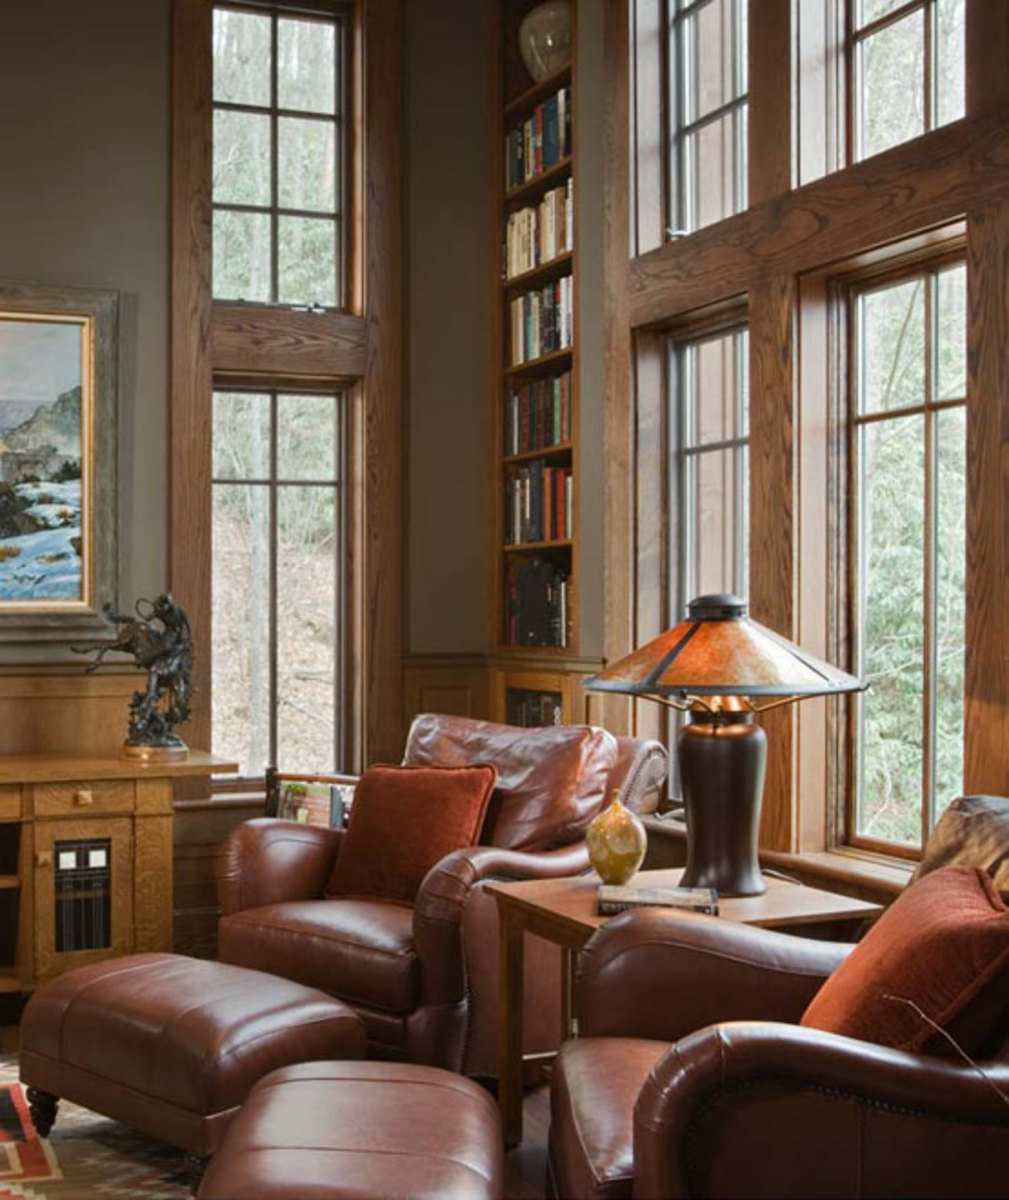 A cozy library corner furnished with classic American Arts & Crafts pieces.